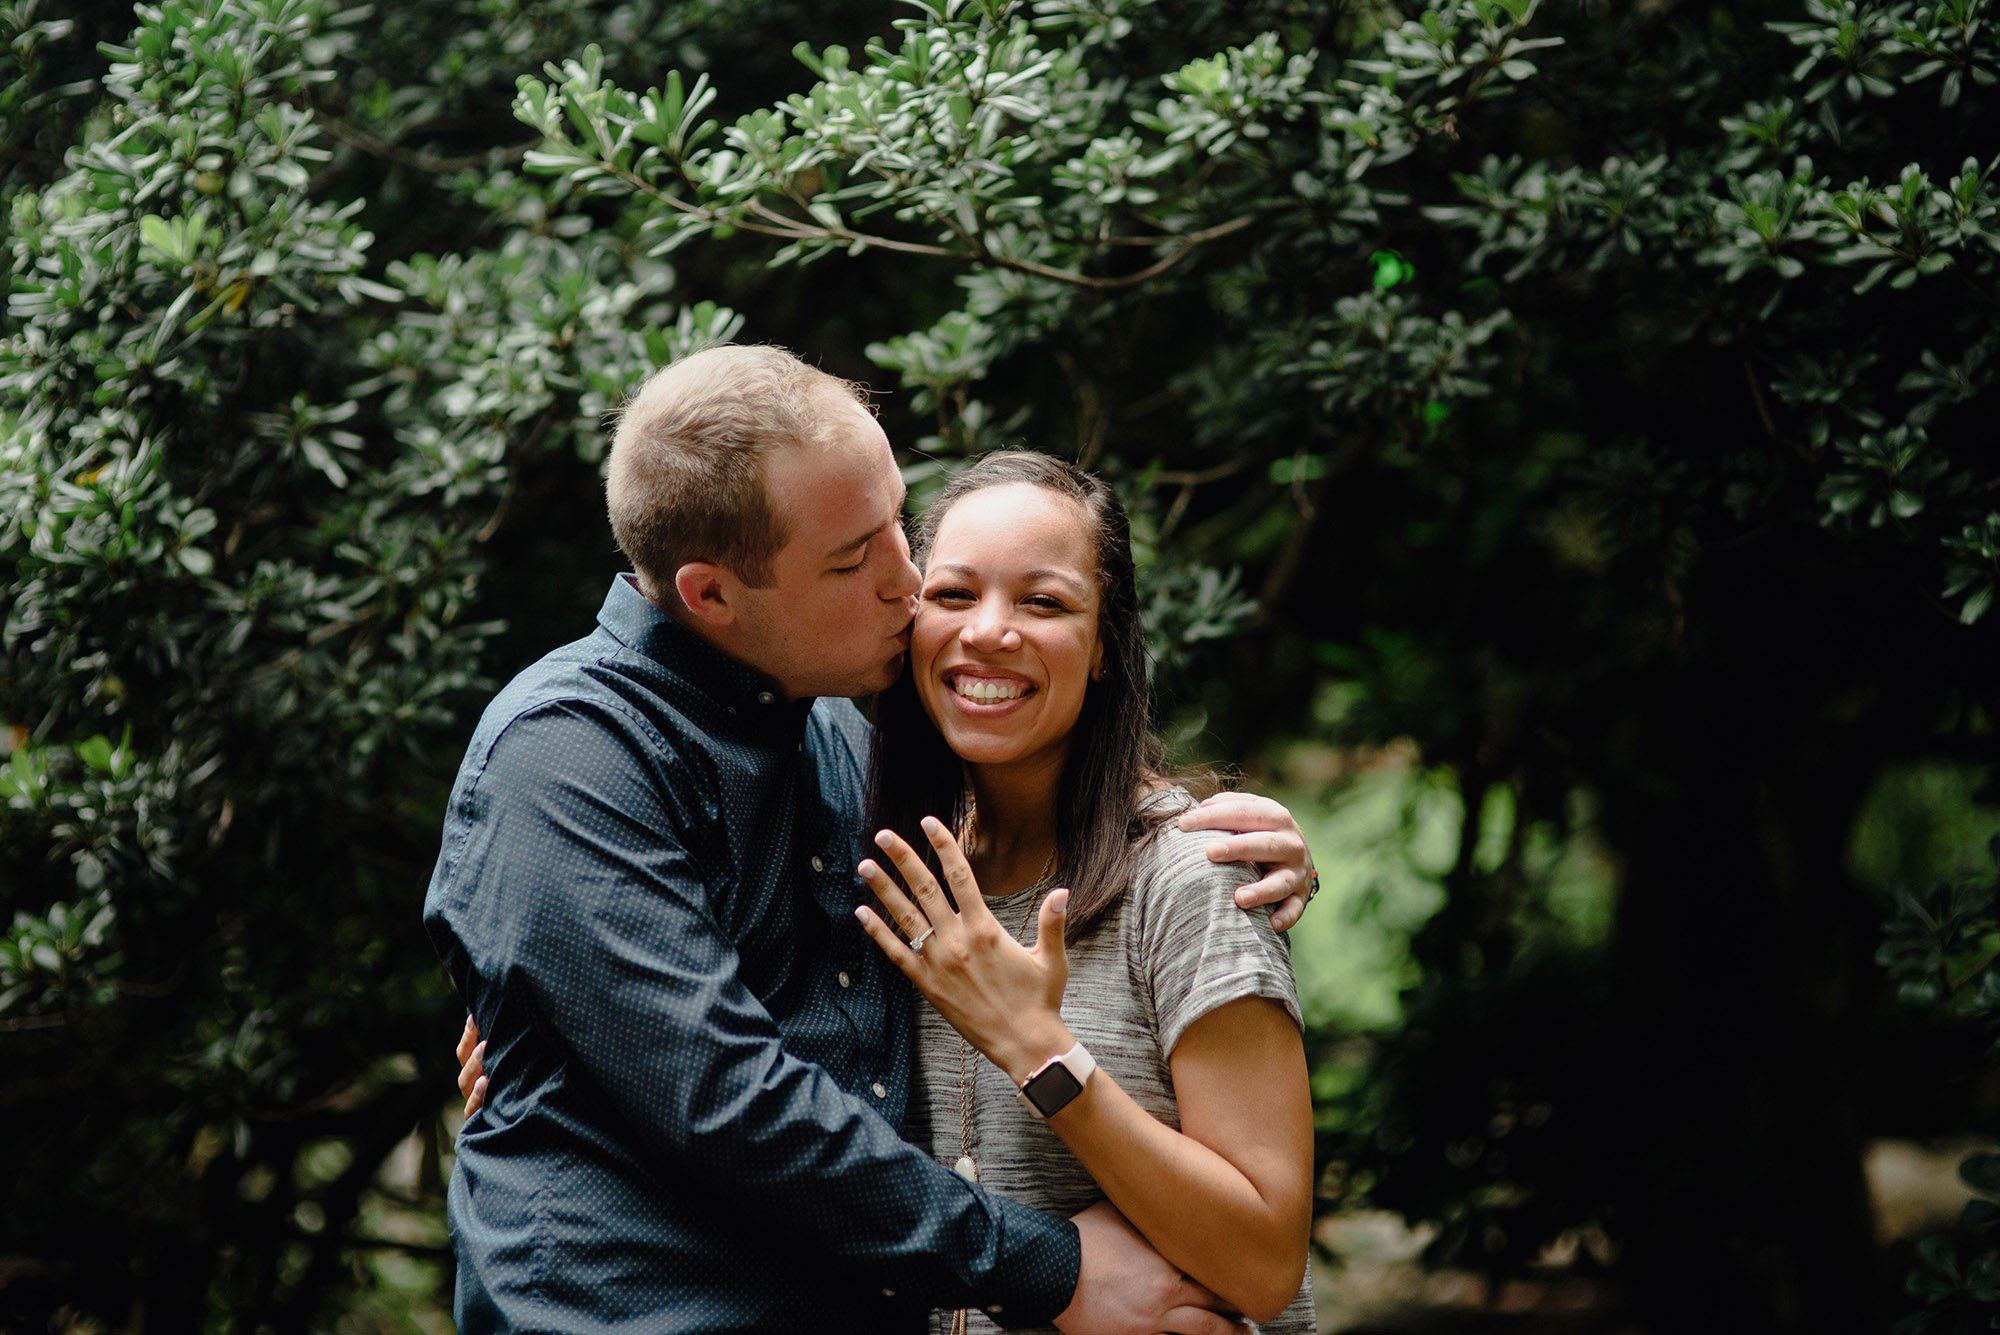 austin proposal photography, austin proposal photographers, zilker botanical garden proposal portraits